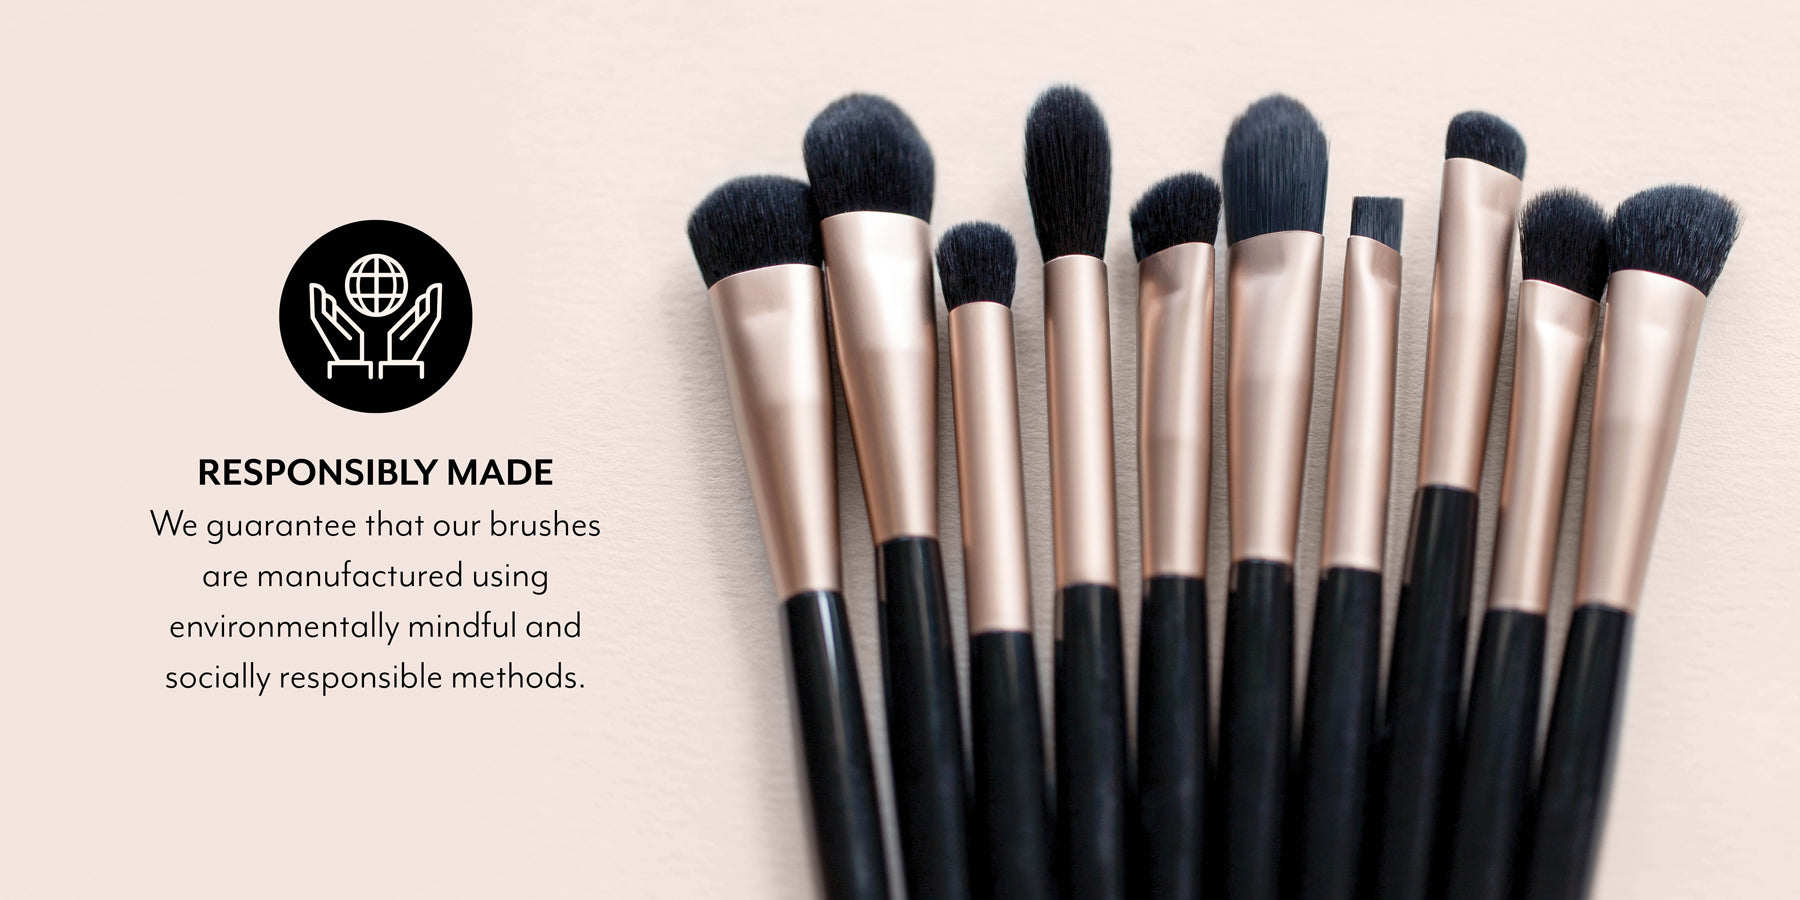 Responsibly Made Brushes